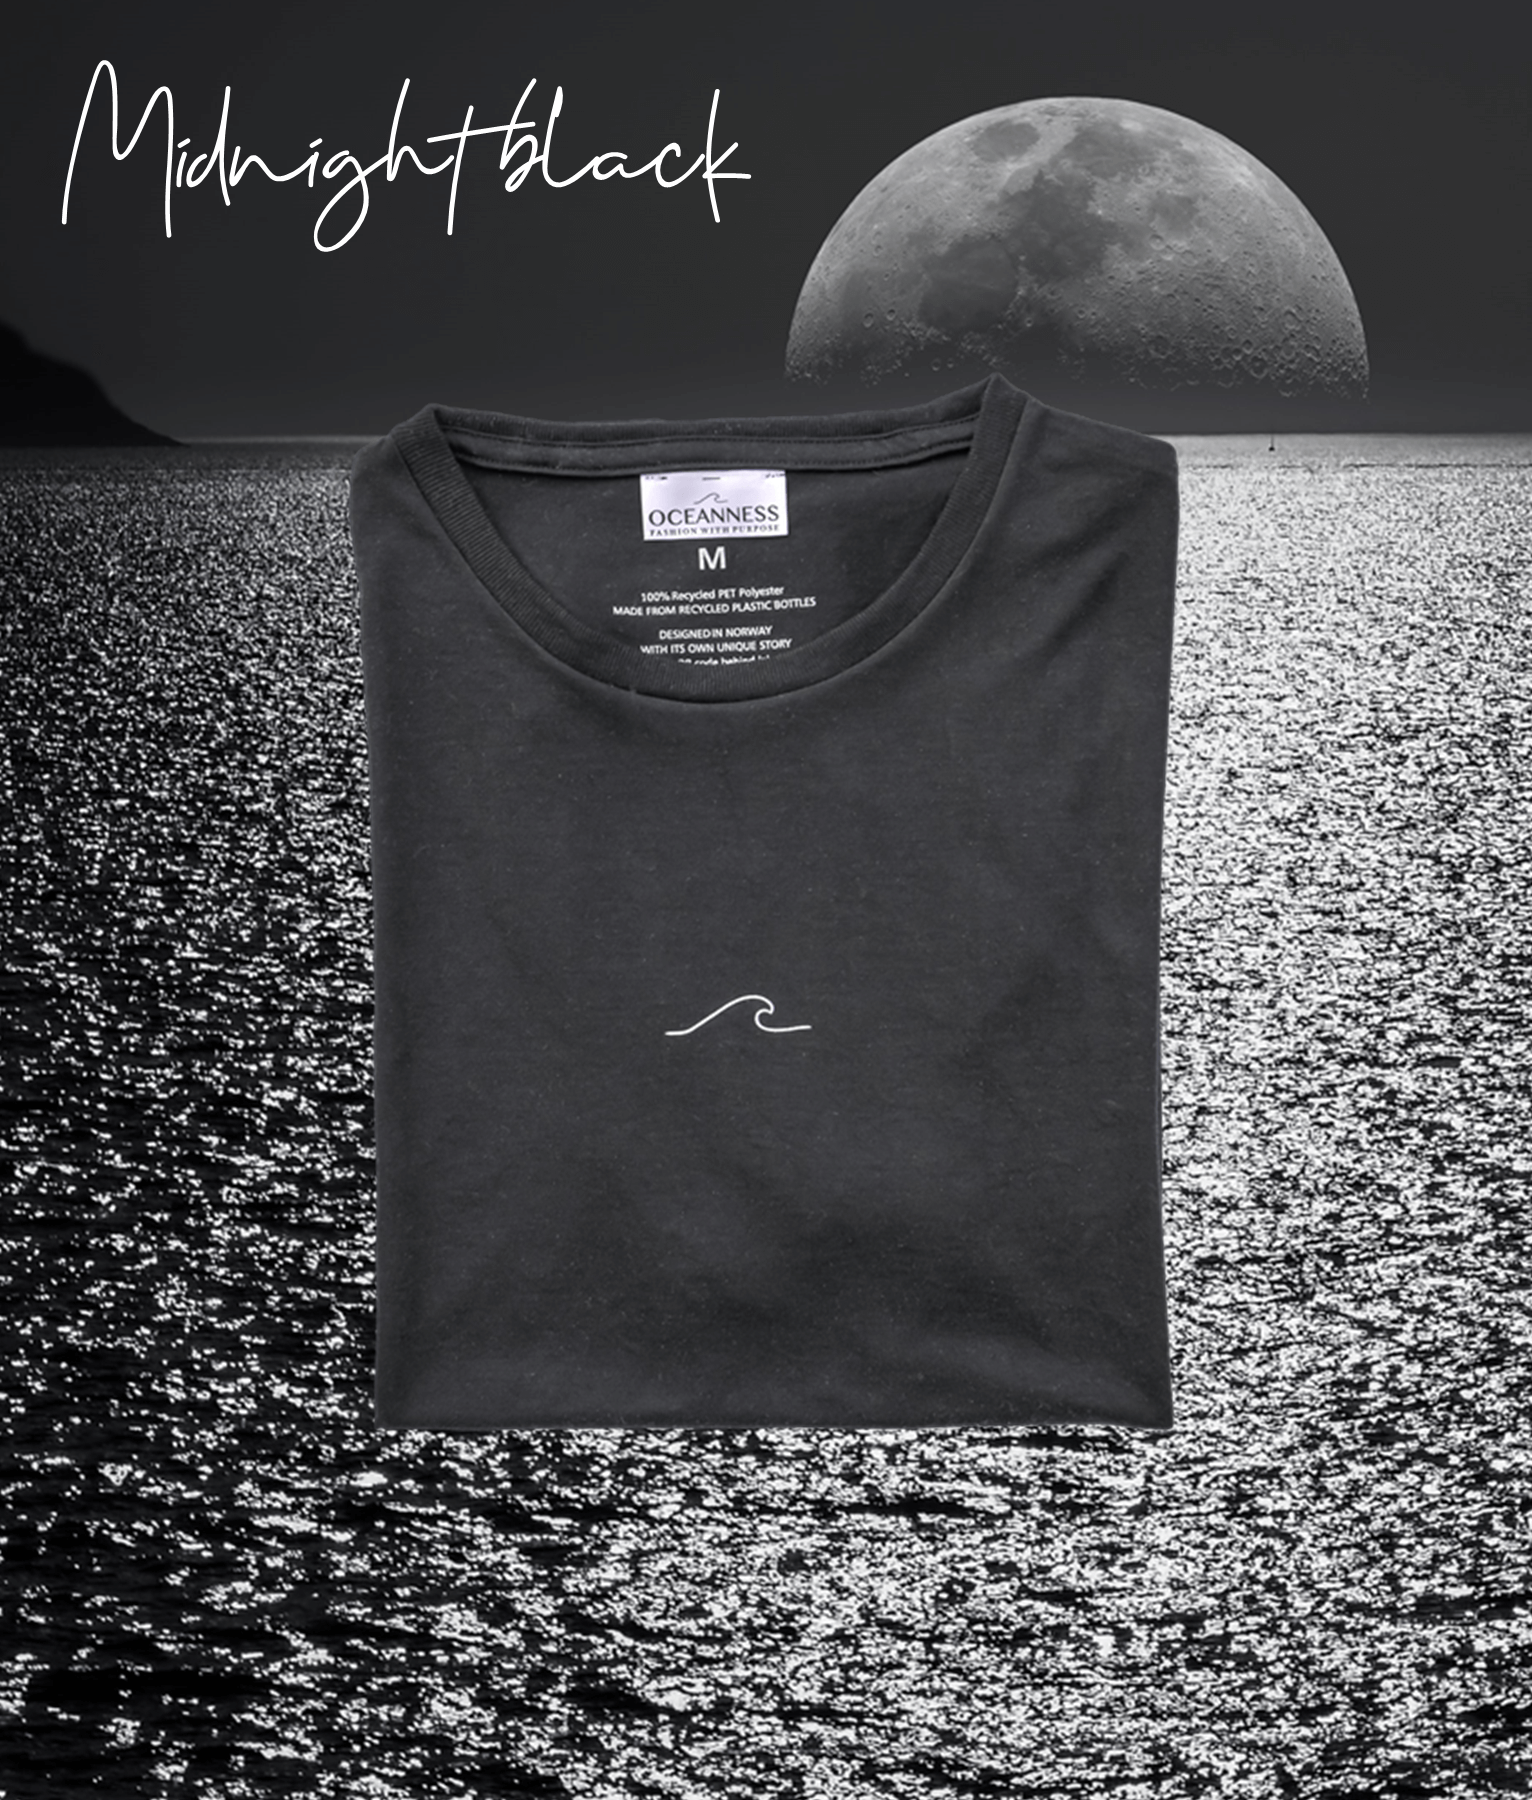 Midnight Black men's Oceanness t-shirt in front of moon and ocean by night